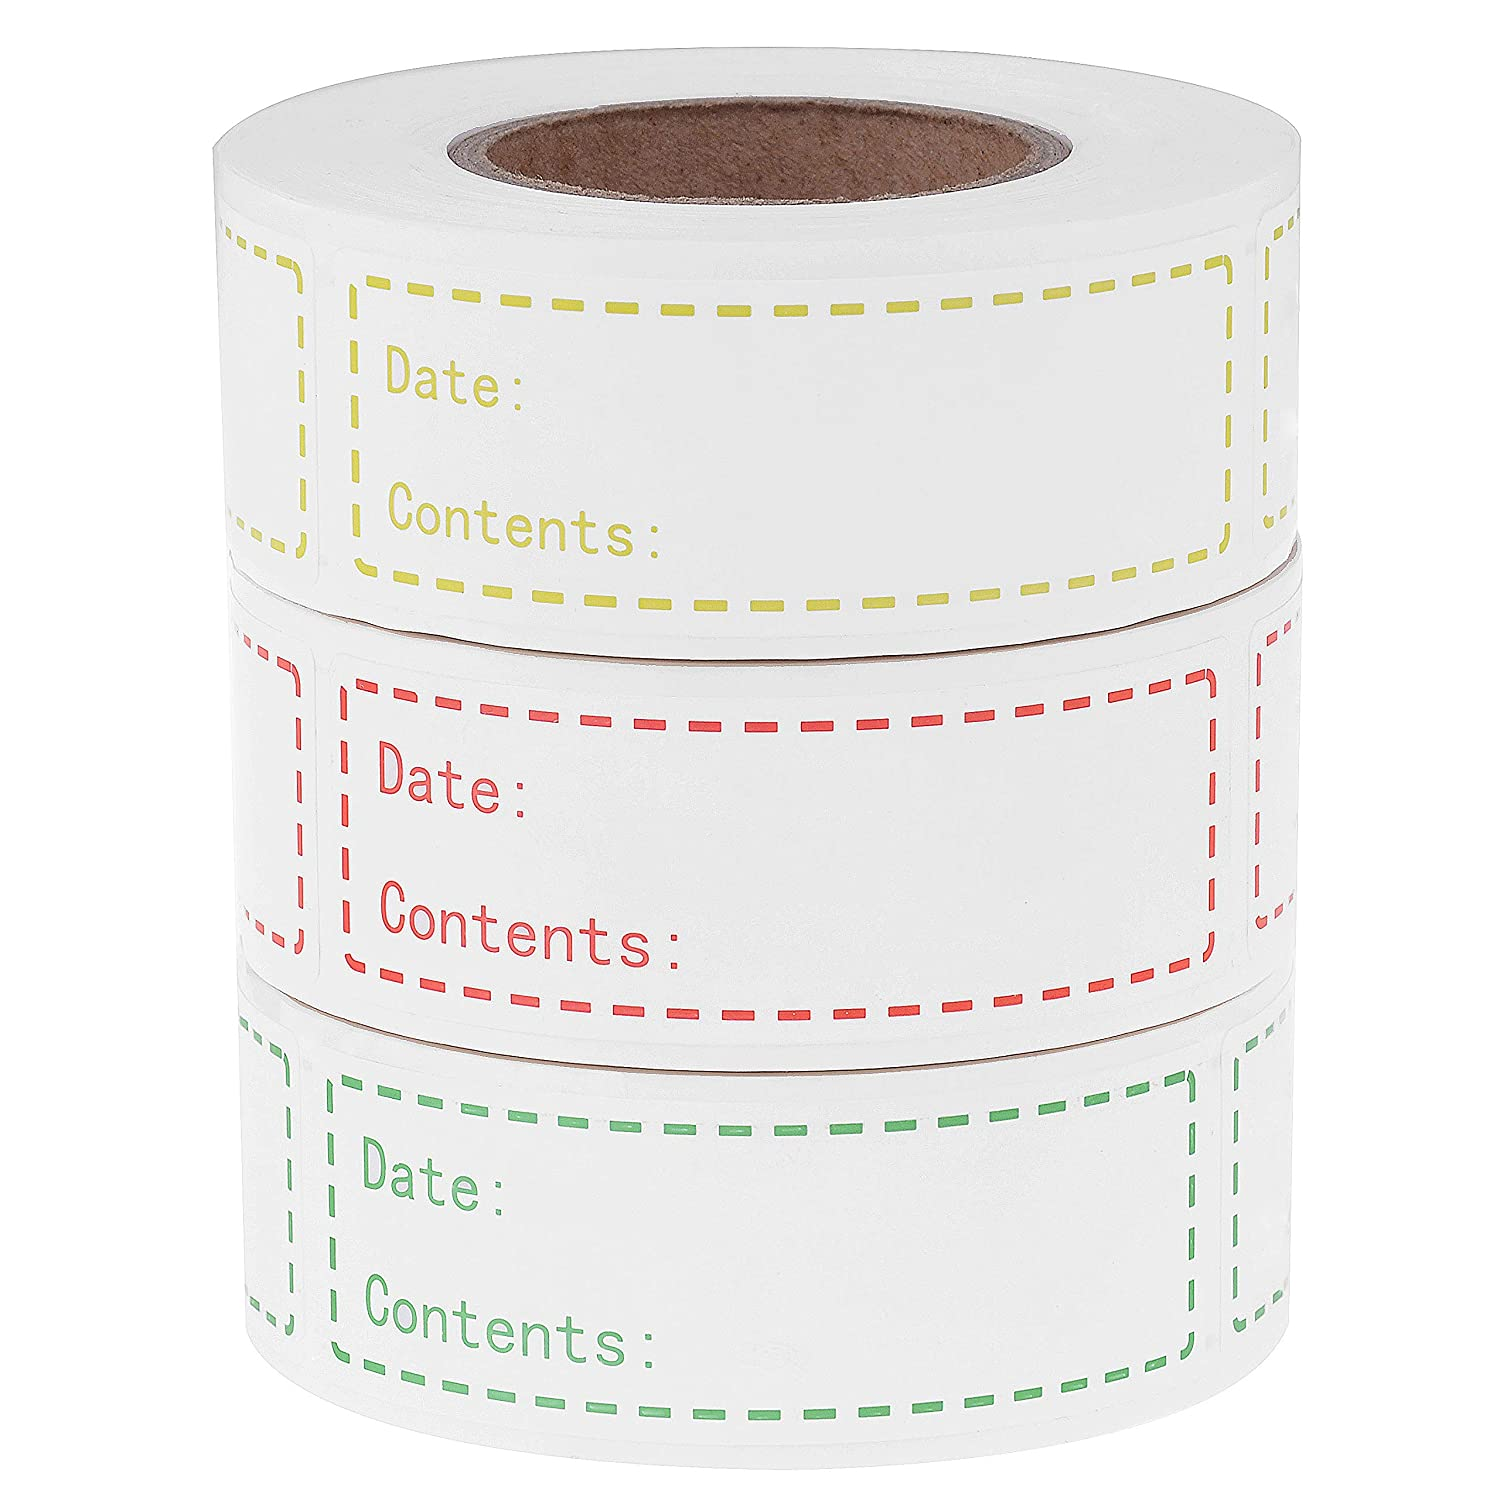 900 Pieces Removable Food Storage Labels Freezer Labels 1x3in Food Storage Stickers Refrigerator Freezer Labels Adhesive Paper Labels(3Rolls,Red,Yellow,Green)